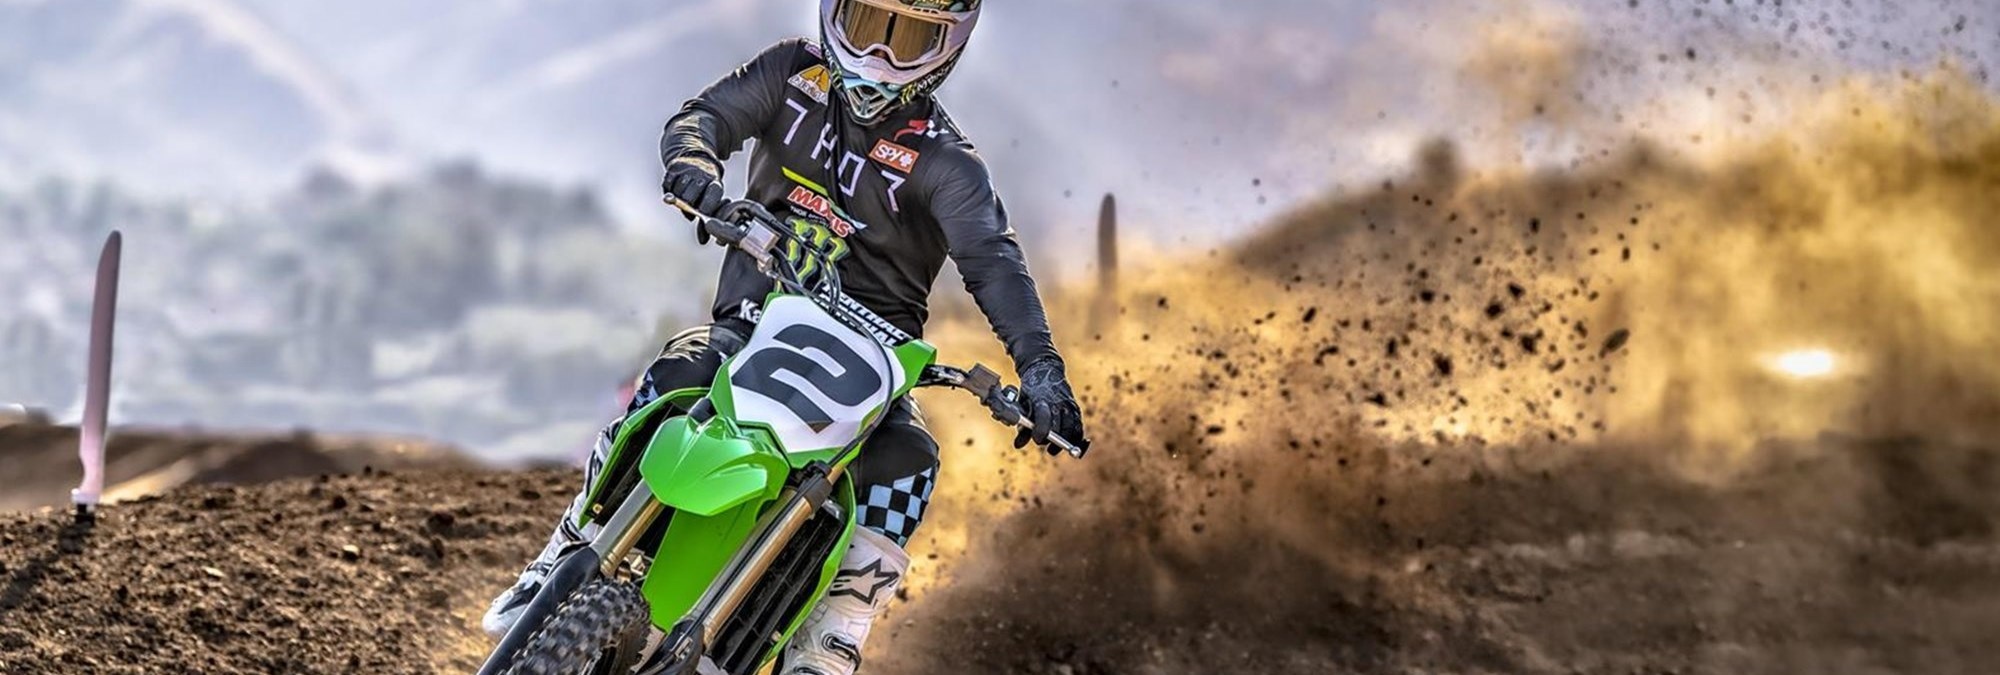 KX450 - THE BIKE THAT BUILDS CHAMPIONS